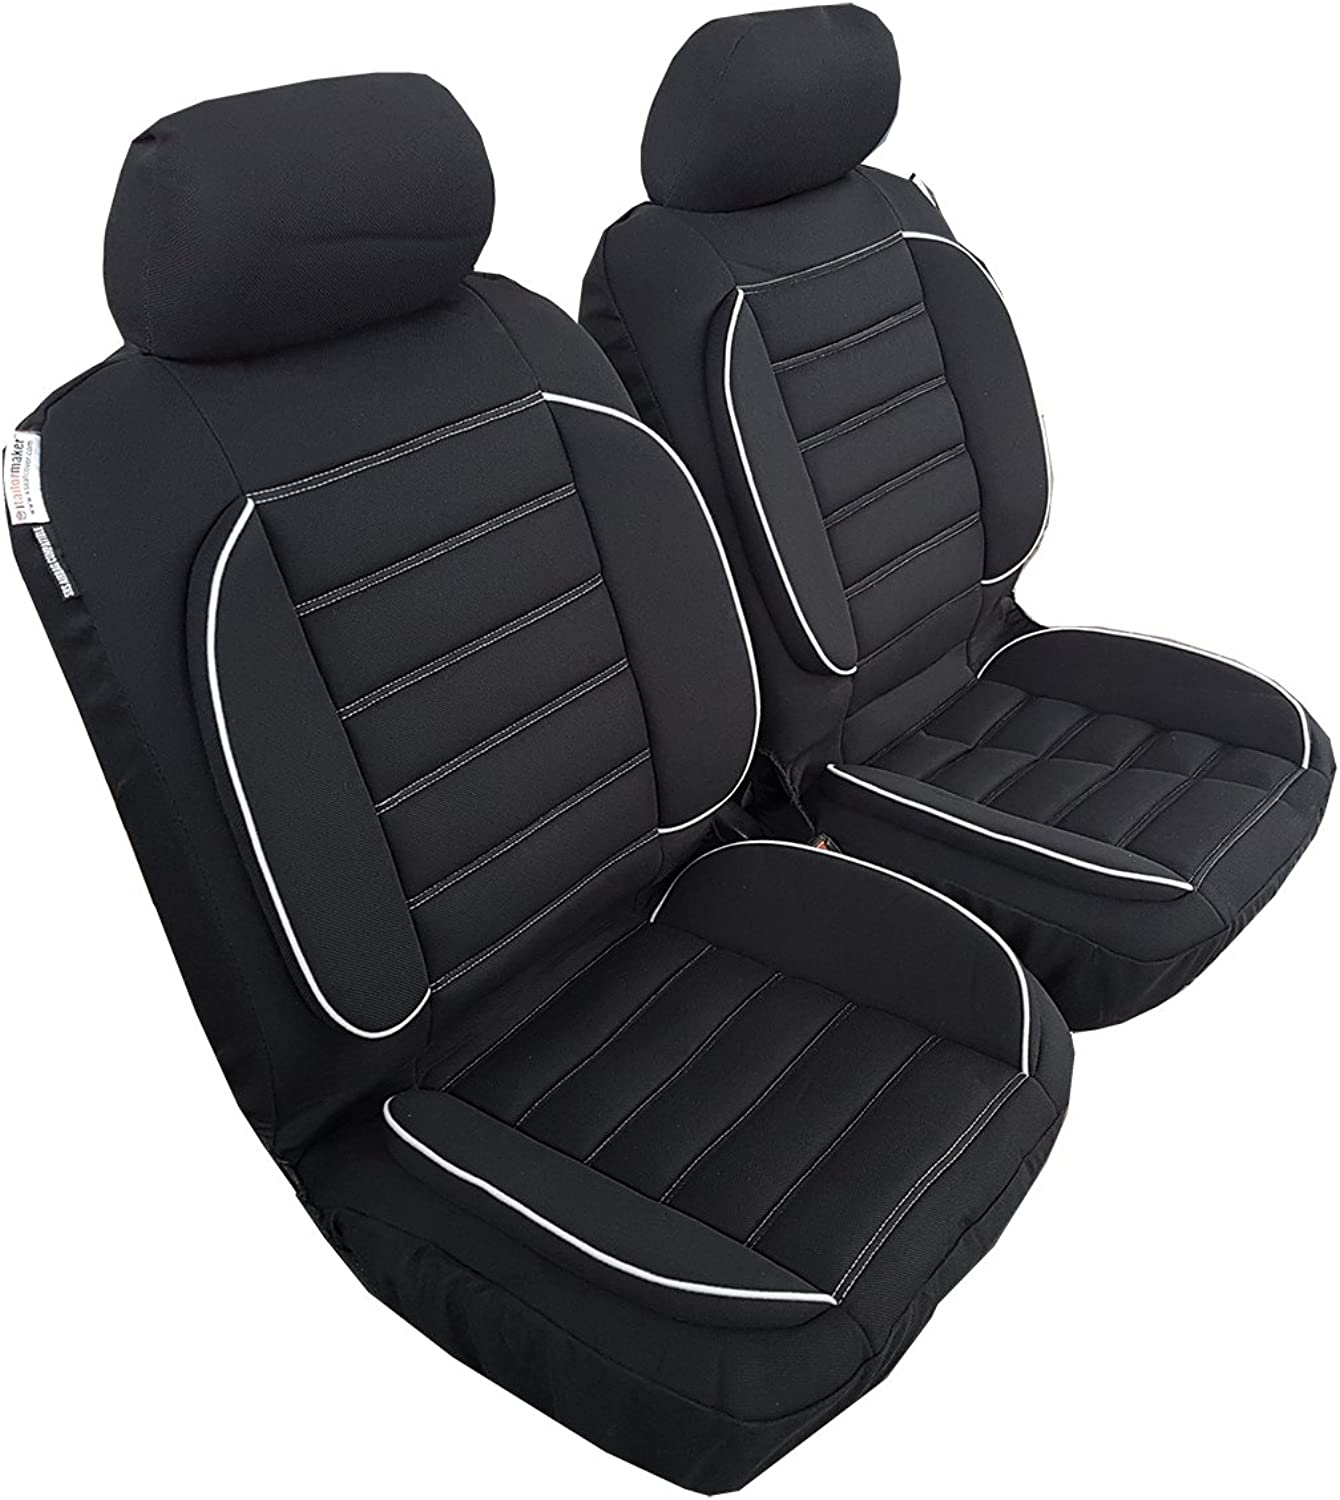 Front Pair Elite Jacquard Car Seat Covers Universal Size Airbag Safe Black, Extra Comfort w t 20mm Sponge Paddings